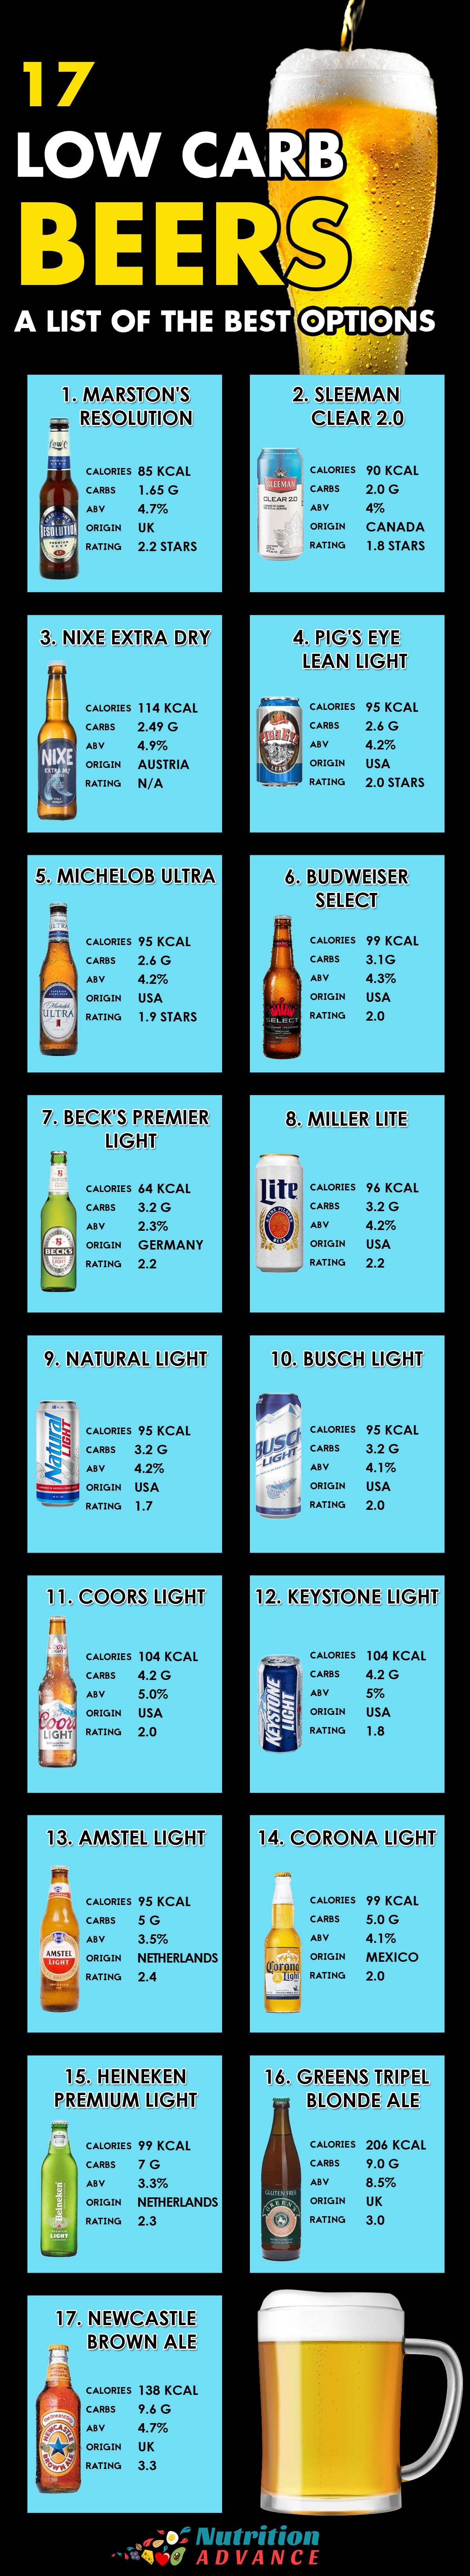 This Article Provides A List Of The Best Low Carb Beer Options.